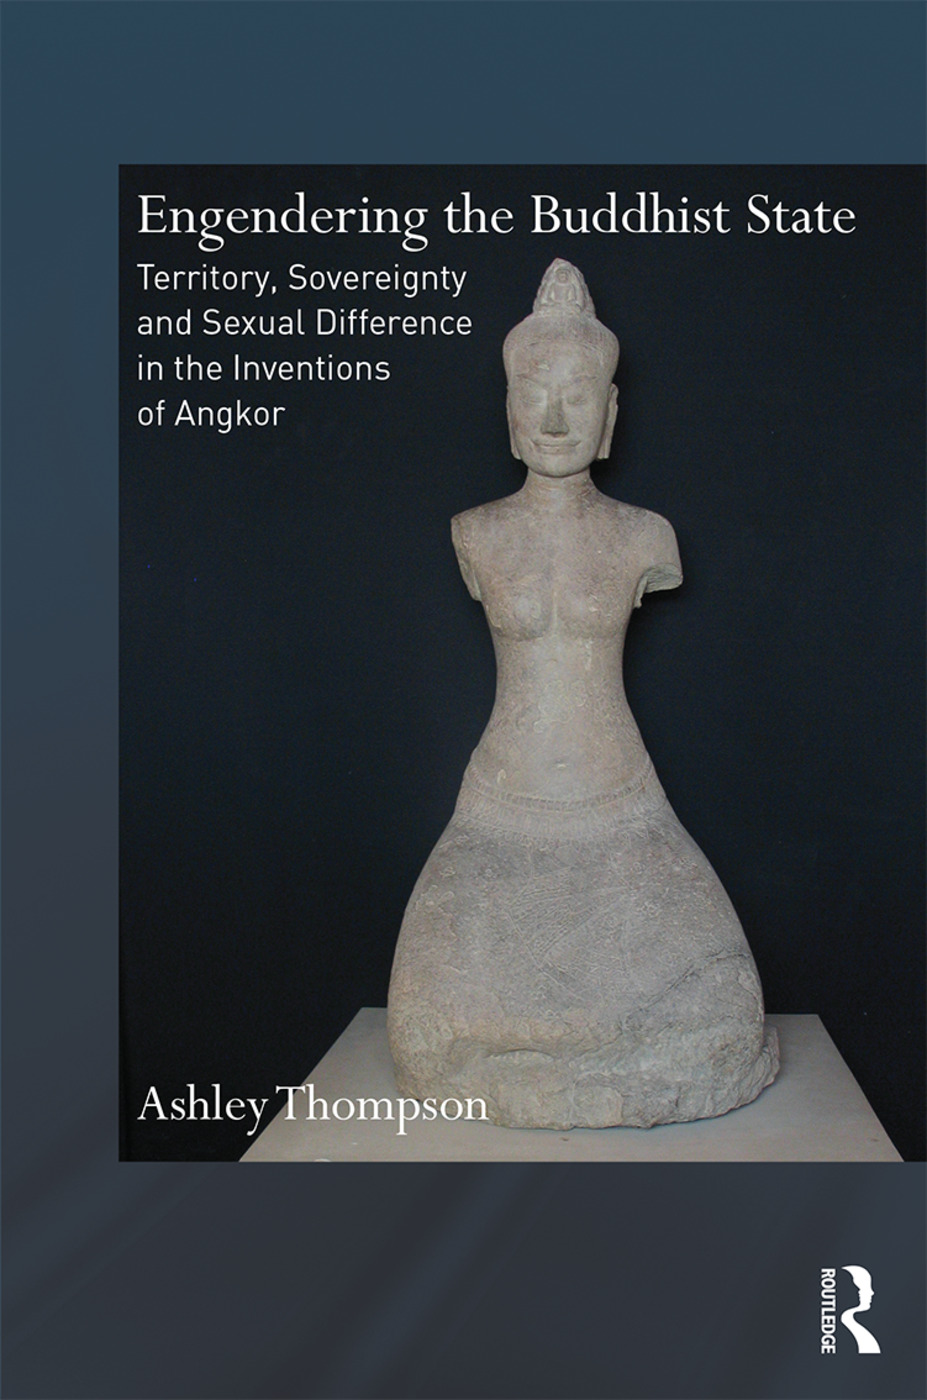 Engendering the Buddhist State: Territory, Sovereignty and Sexual Difference in the Inventions of Angkor, 1st Edition (Hardback) book cover